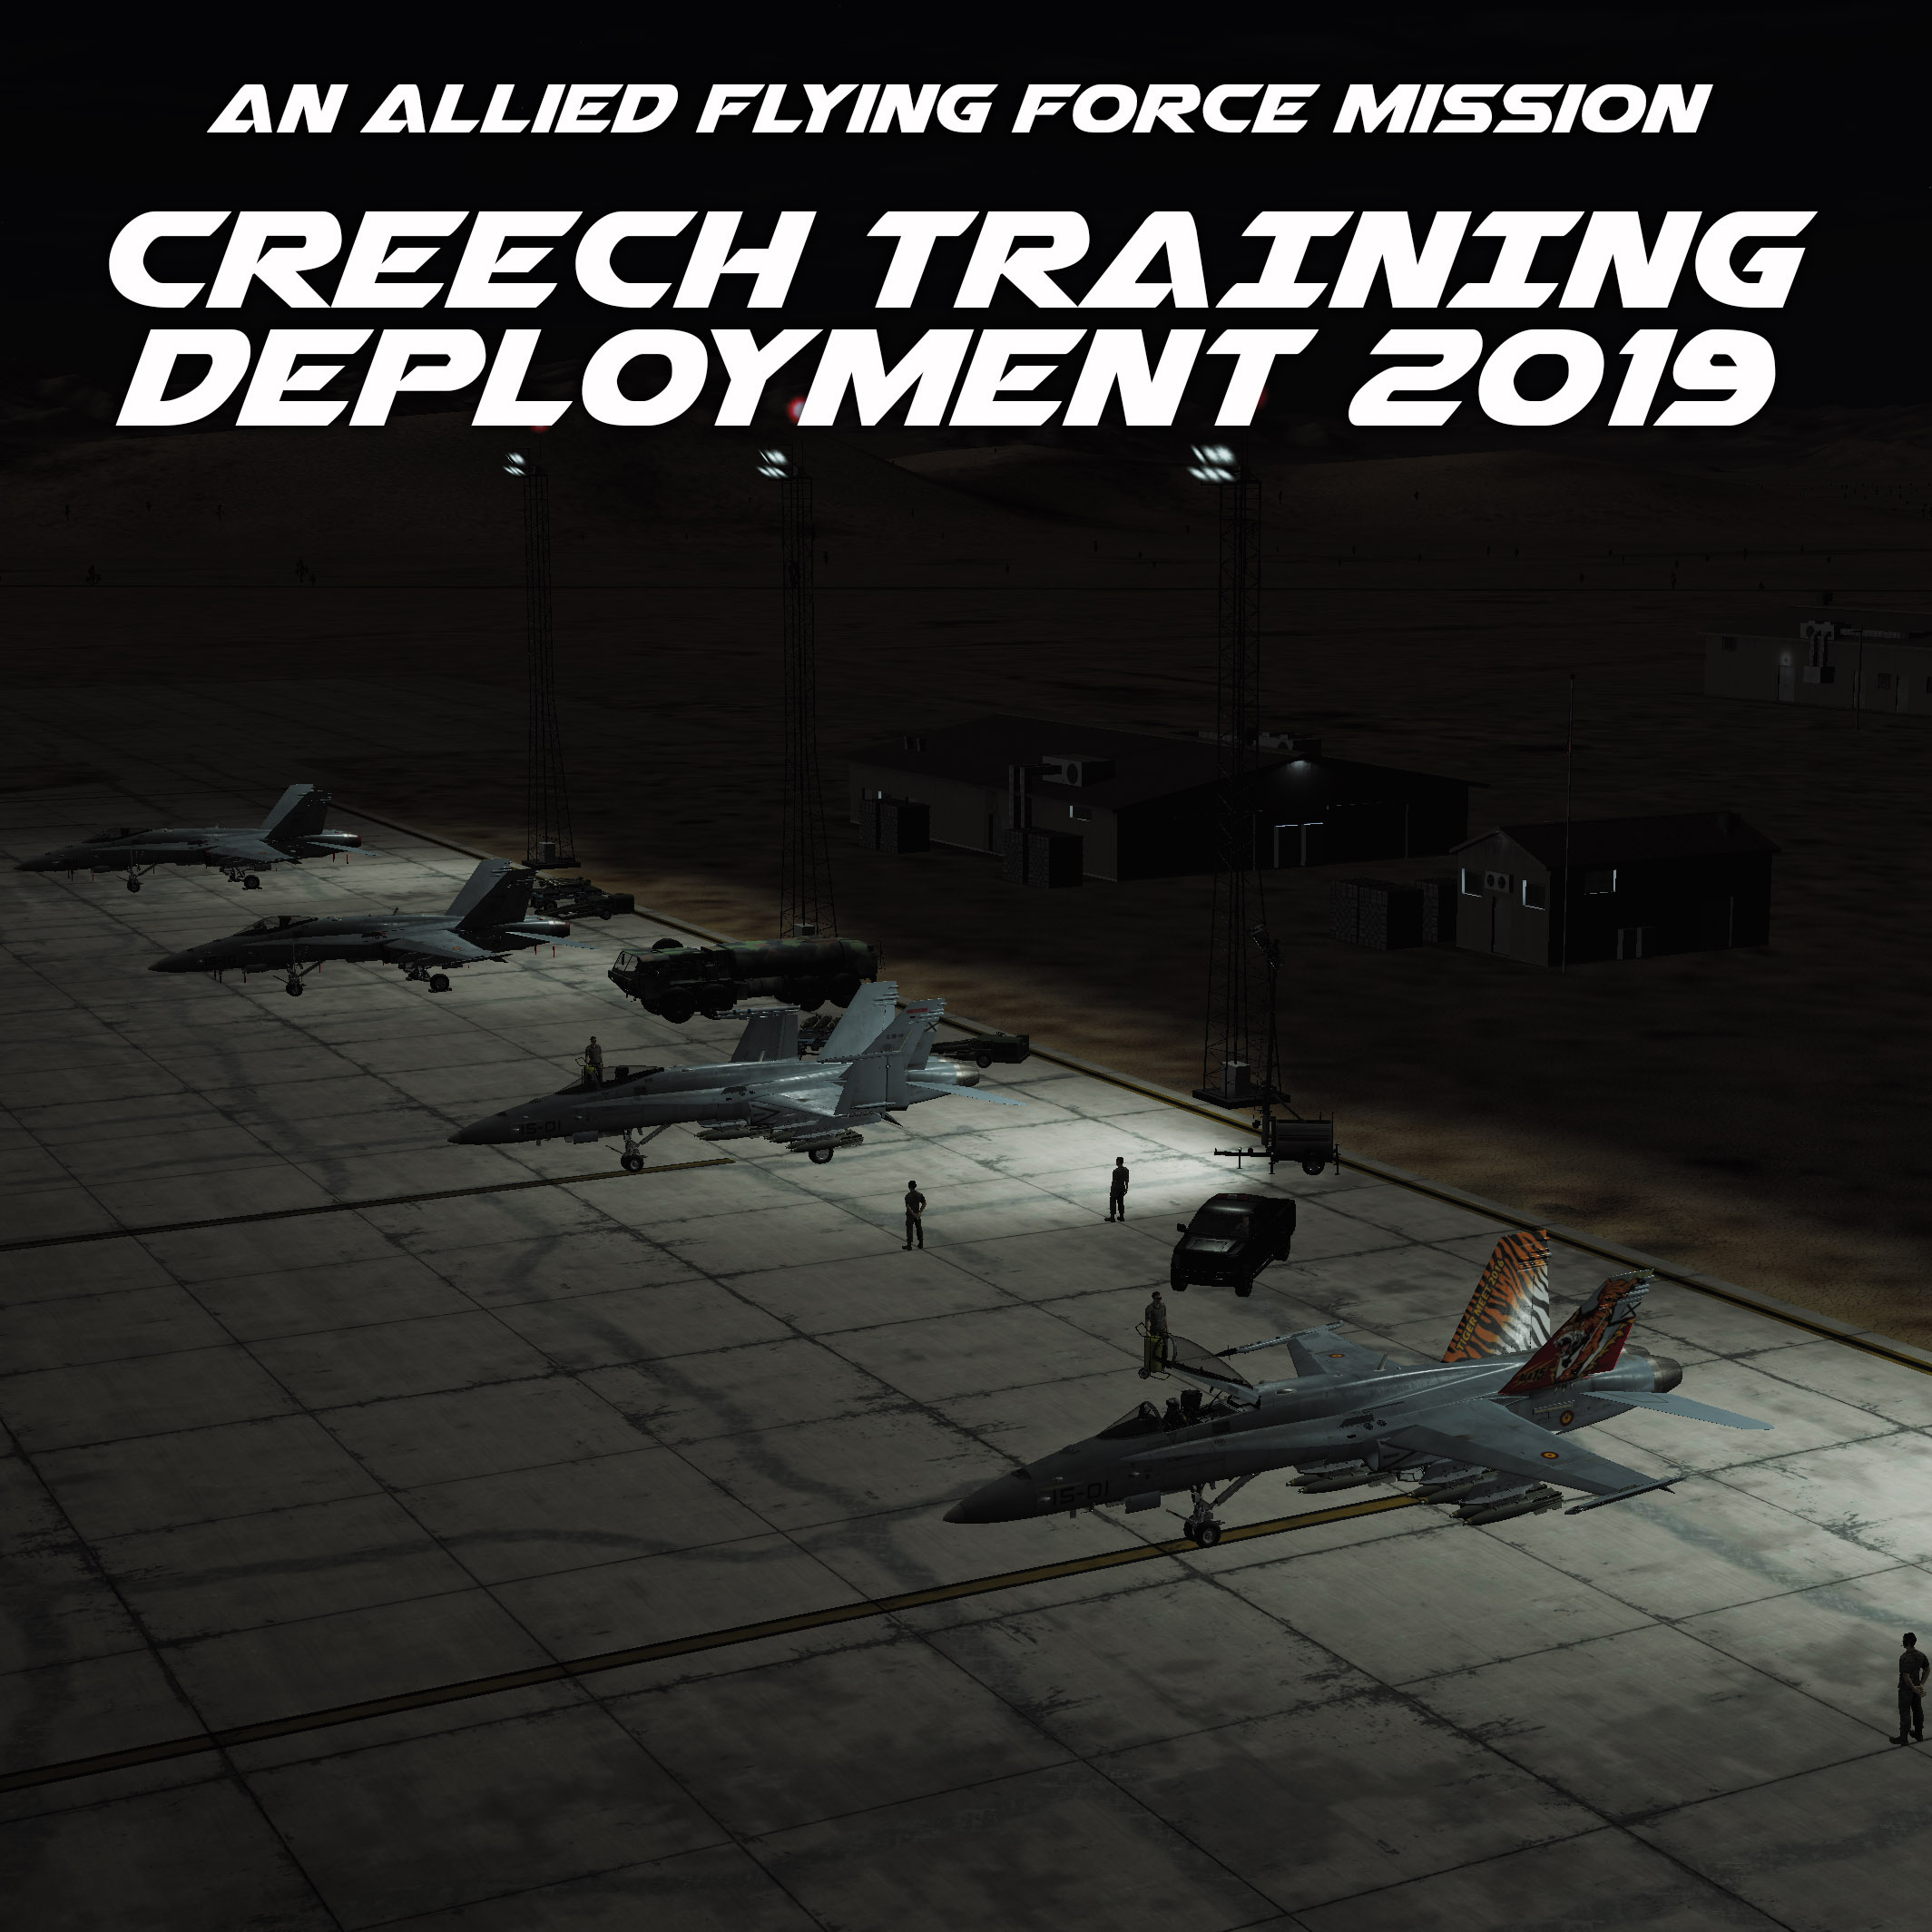 CREECH TRAINING DEPLOYMENT 2019